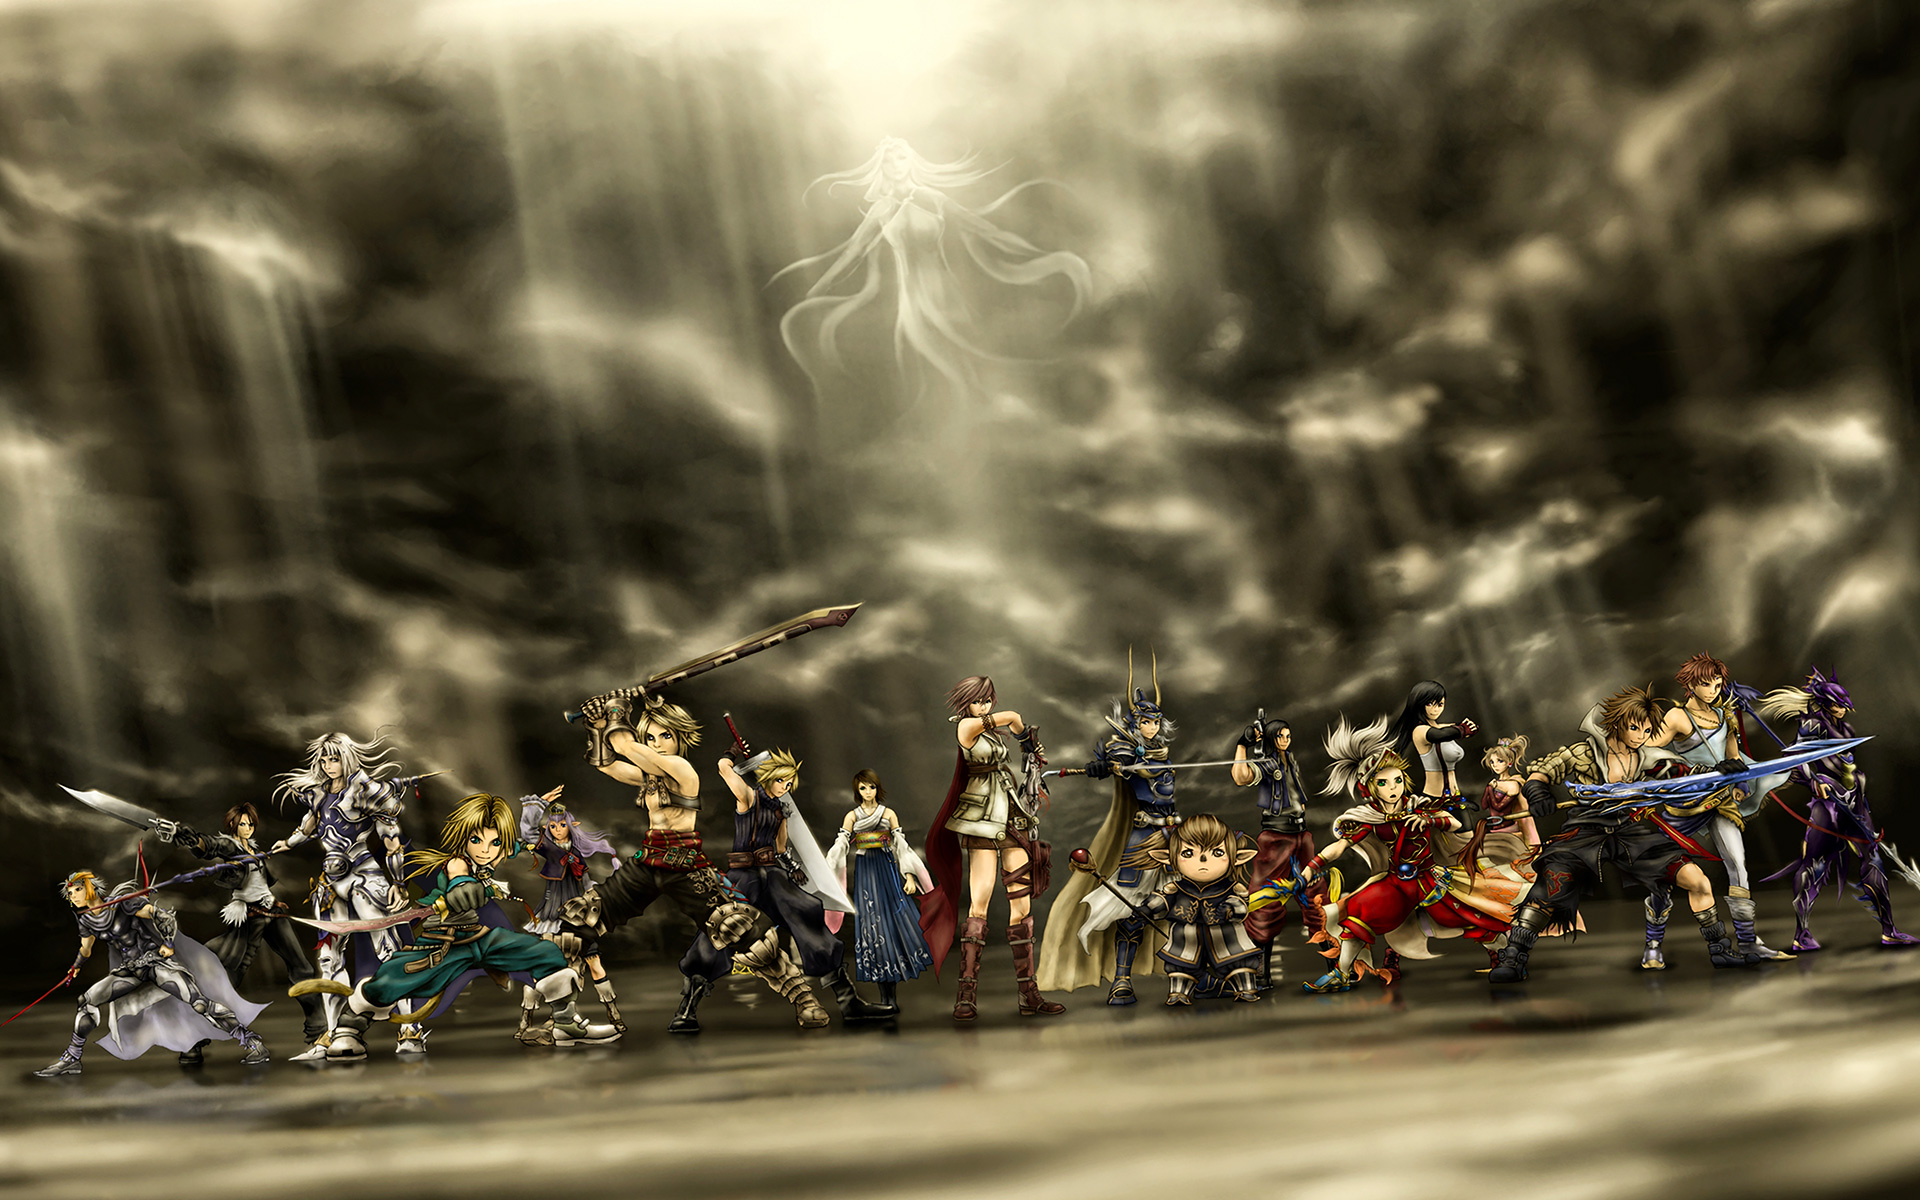 DISSIDIA Final Fantasy NT Wallpapers in Ultra HD